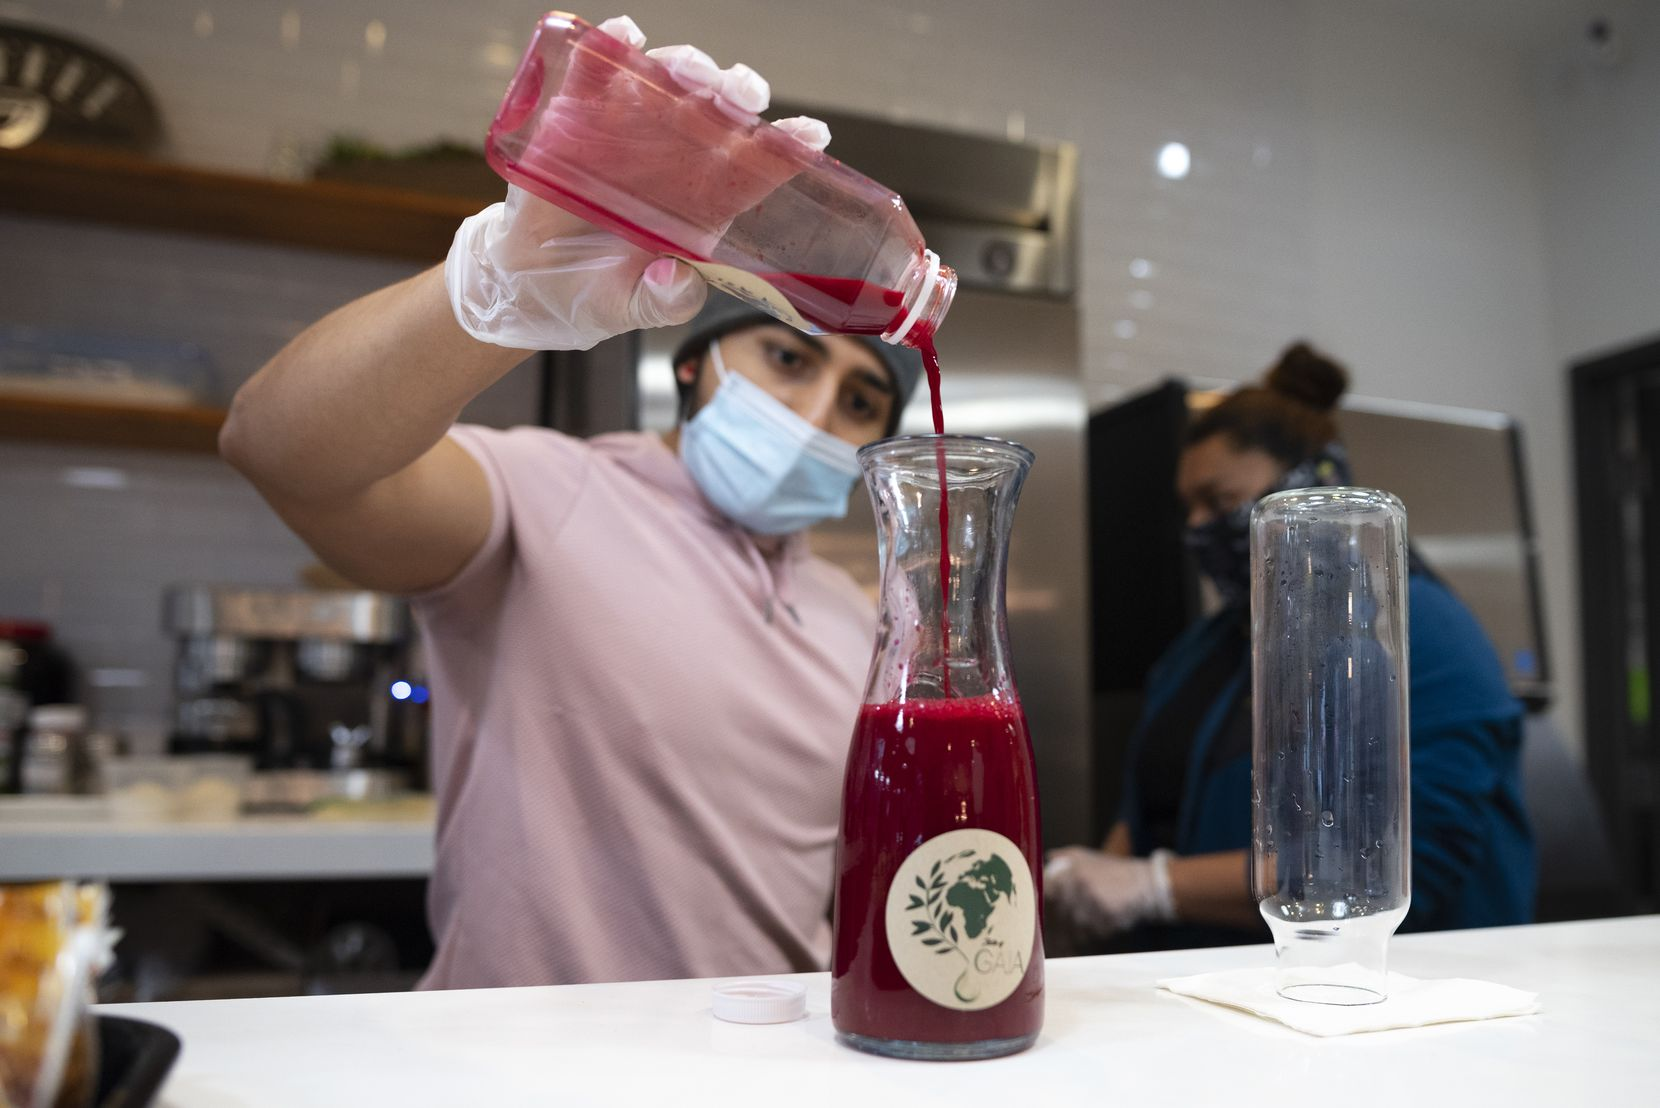 Partner Angel Diaz pours an Apollo juice into a serving bottle at the juice bar inside Taste of Gaia in downtown Dallas, on Wednesday, Dec. 31, 2020.